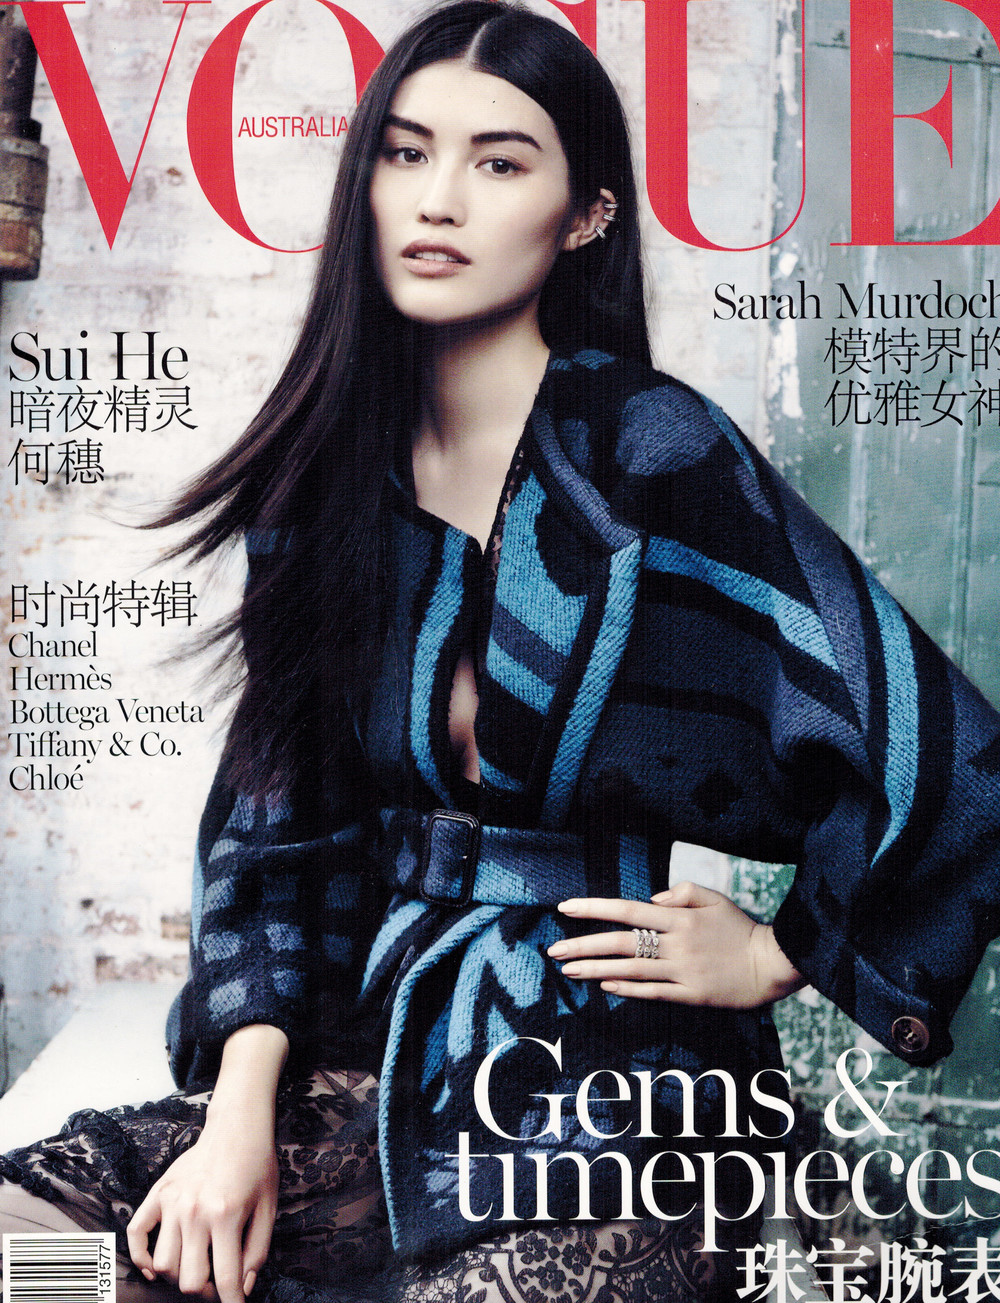 sui he on vogue australia cover photo shoot by benny horne and county fair productions